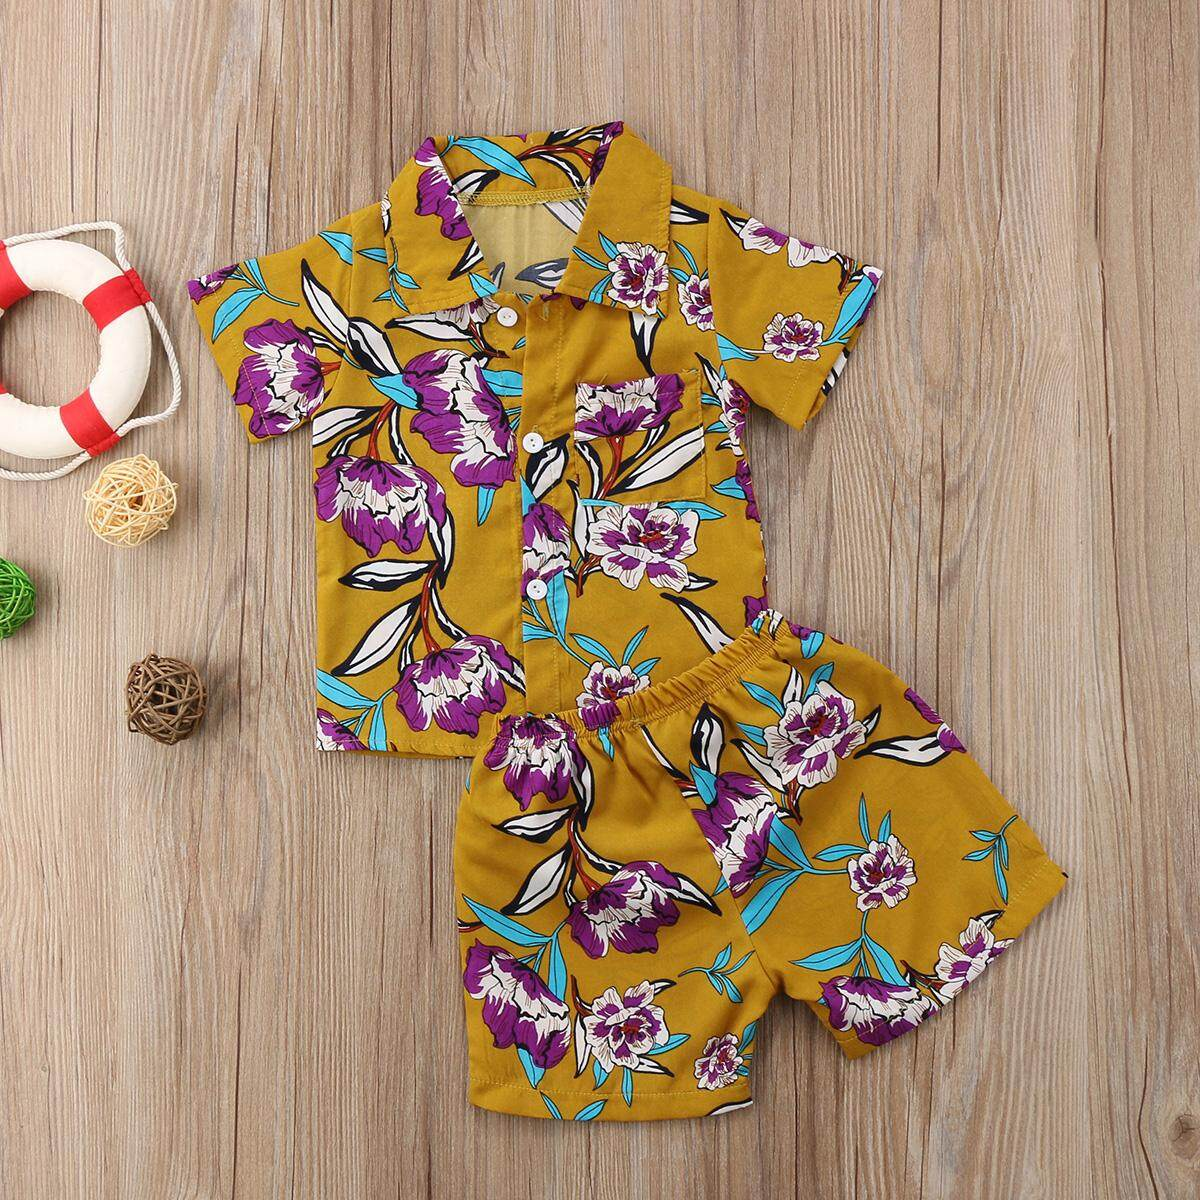 add75b580 Product details of 2pcs Kids Baby Boy Clothes Set Short Sleeve Hawaii Style  Blouse Tops+ Floral Shorts Outfits Baby Boy Summer Beach Suit 1-6T